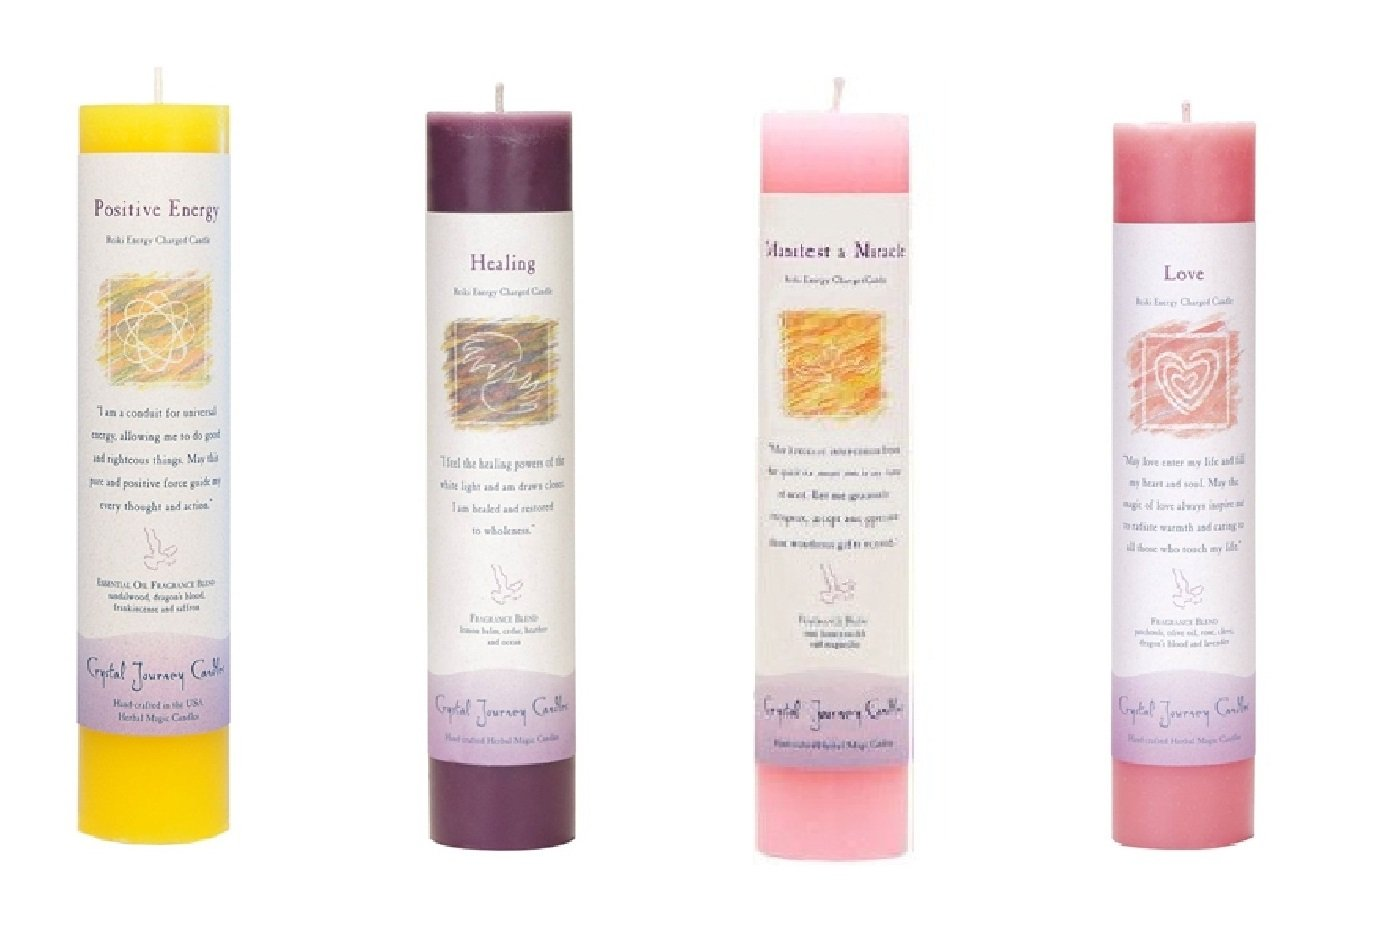 Crystal Journey Reiki Charged Herbal Magic Pillar Candle with Inspirational Labels - Bundle of 4 (Positive Energy, Healing, Manifest a Miracle, Love) Each 7''x1.5'' handcrafted with lead-free materials